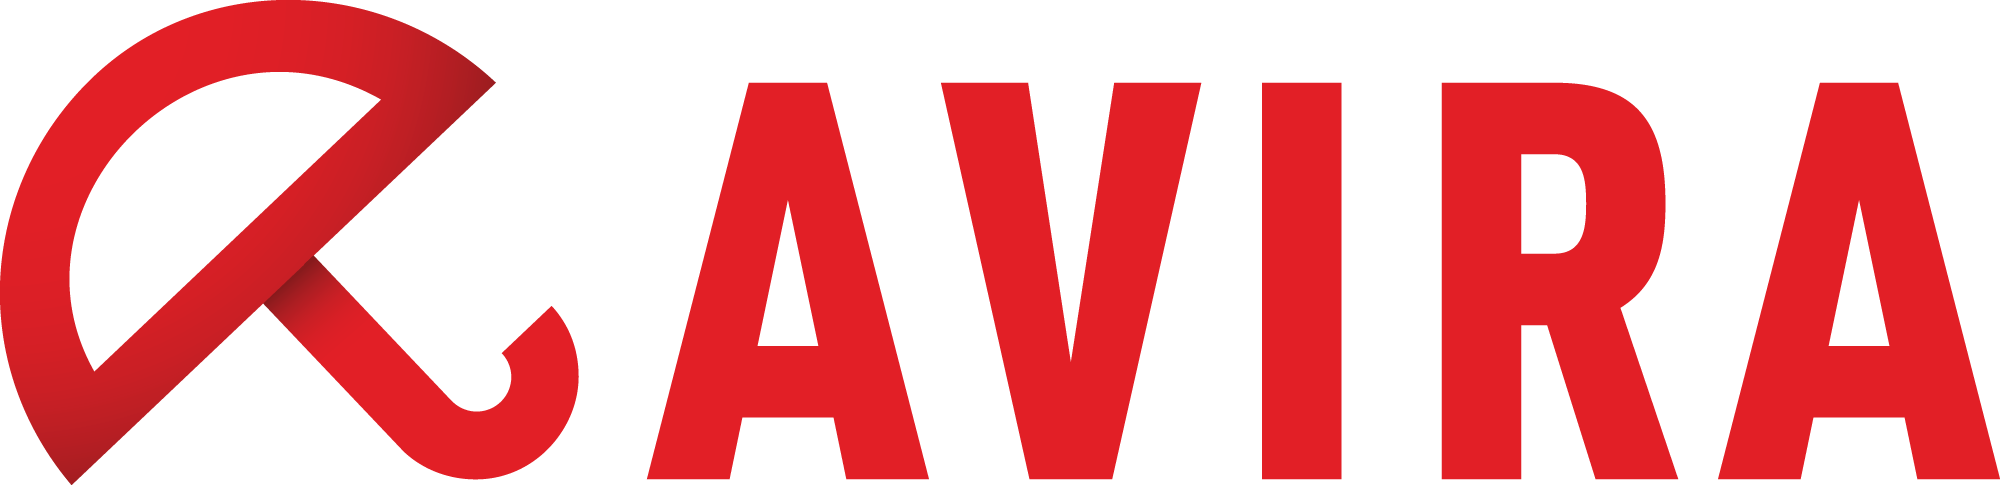 http://upload.wikimedia.org/wikipedia/commons/9/94/Avira_logo_2011.png